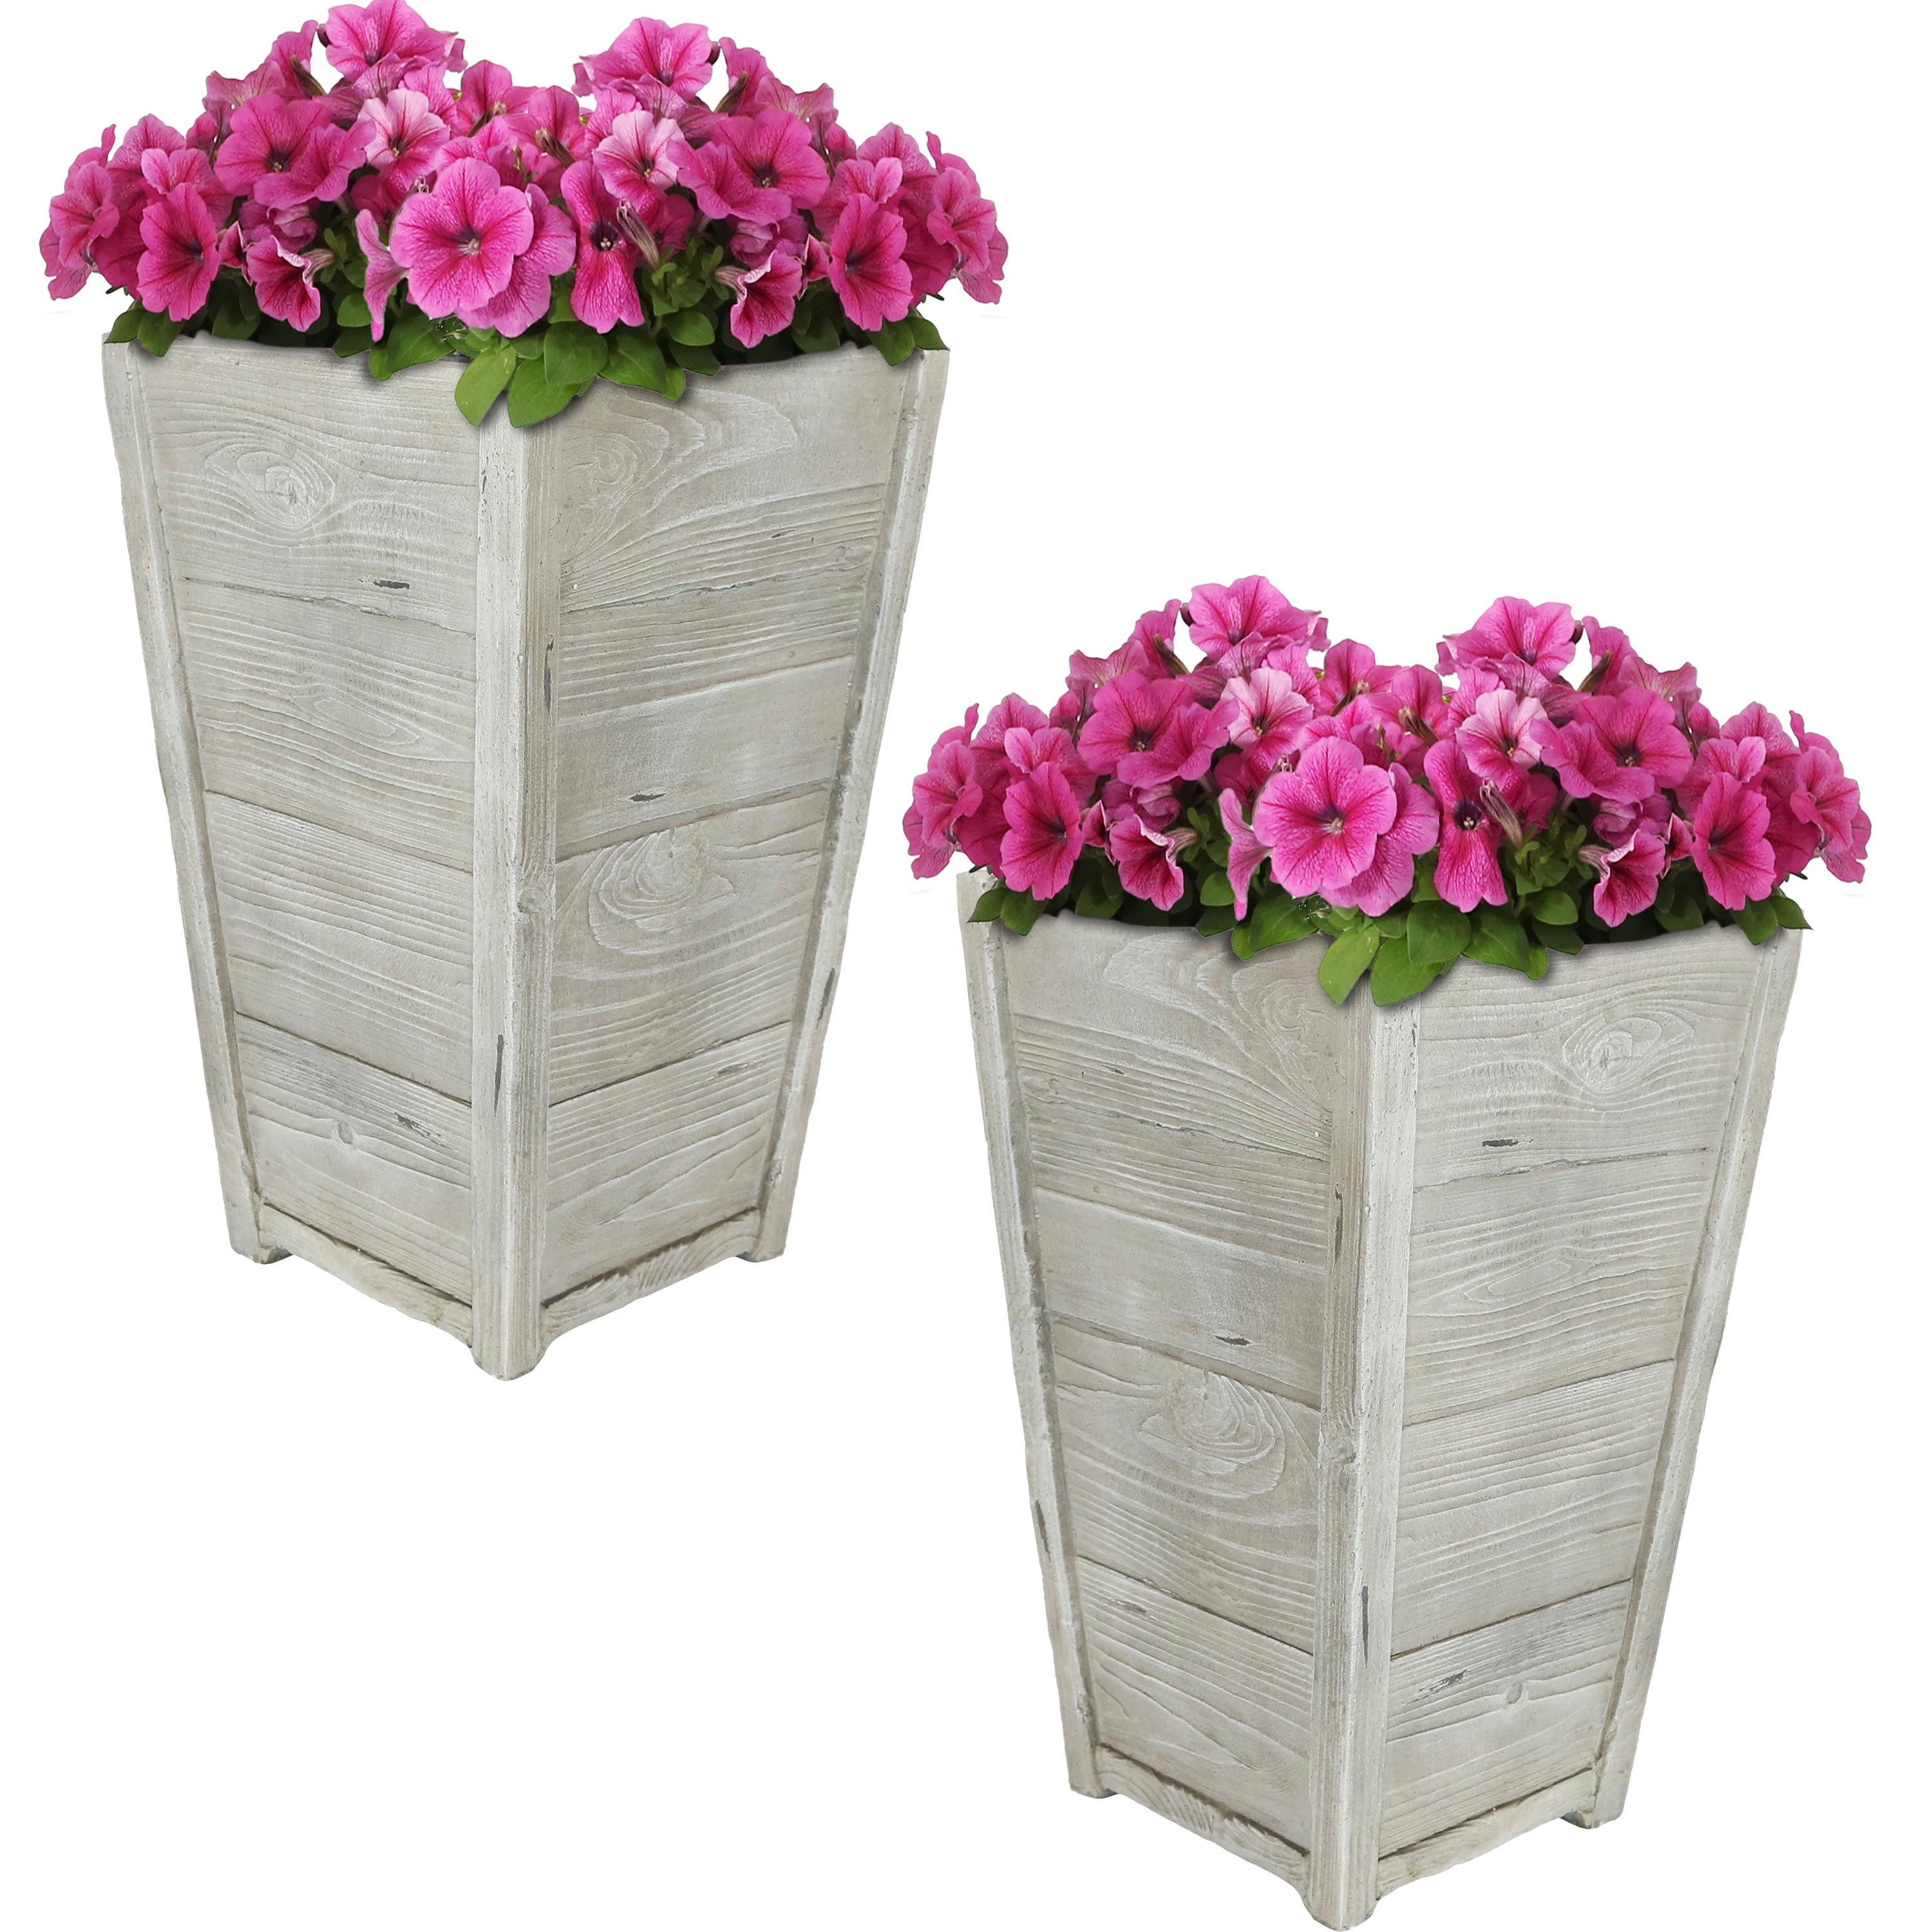 Manor Fiber Clay Square Planter Flower Pot Wood Photo